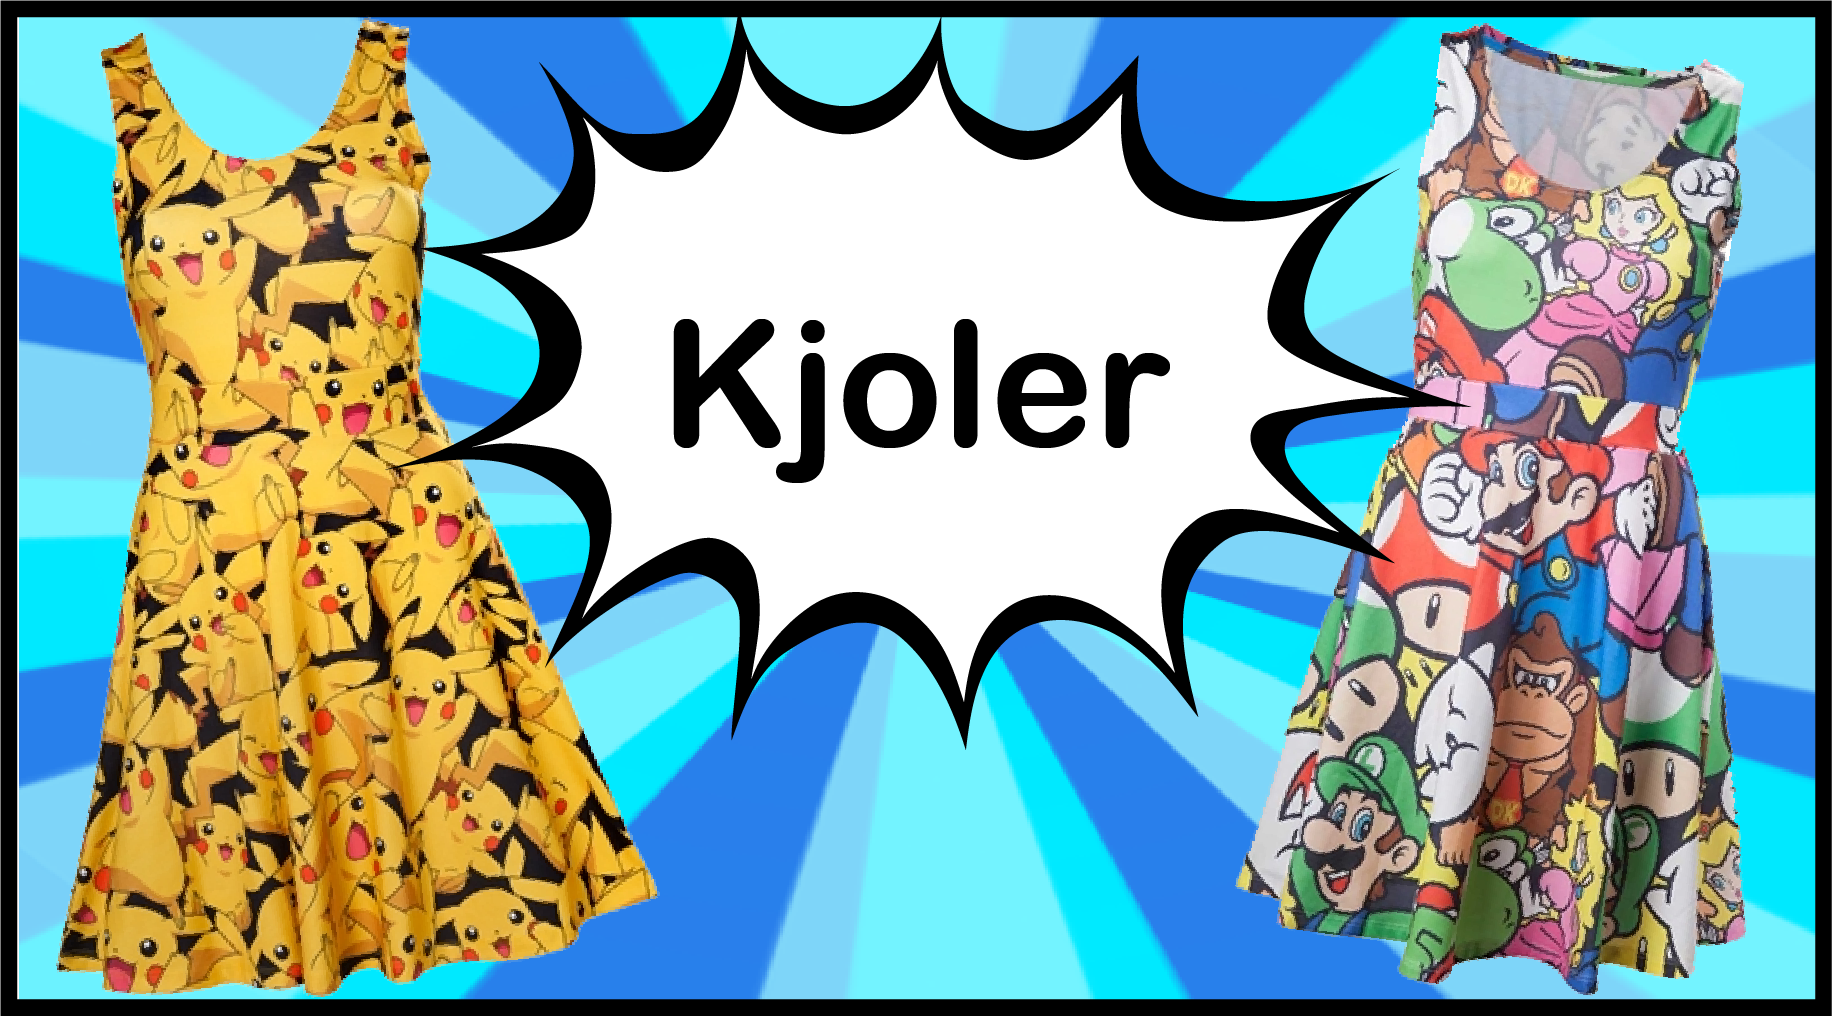 Kjoler. Pokemon, Adventure Time, Maria, Spiderman, Kvalitet